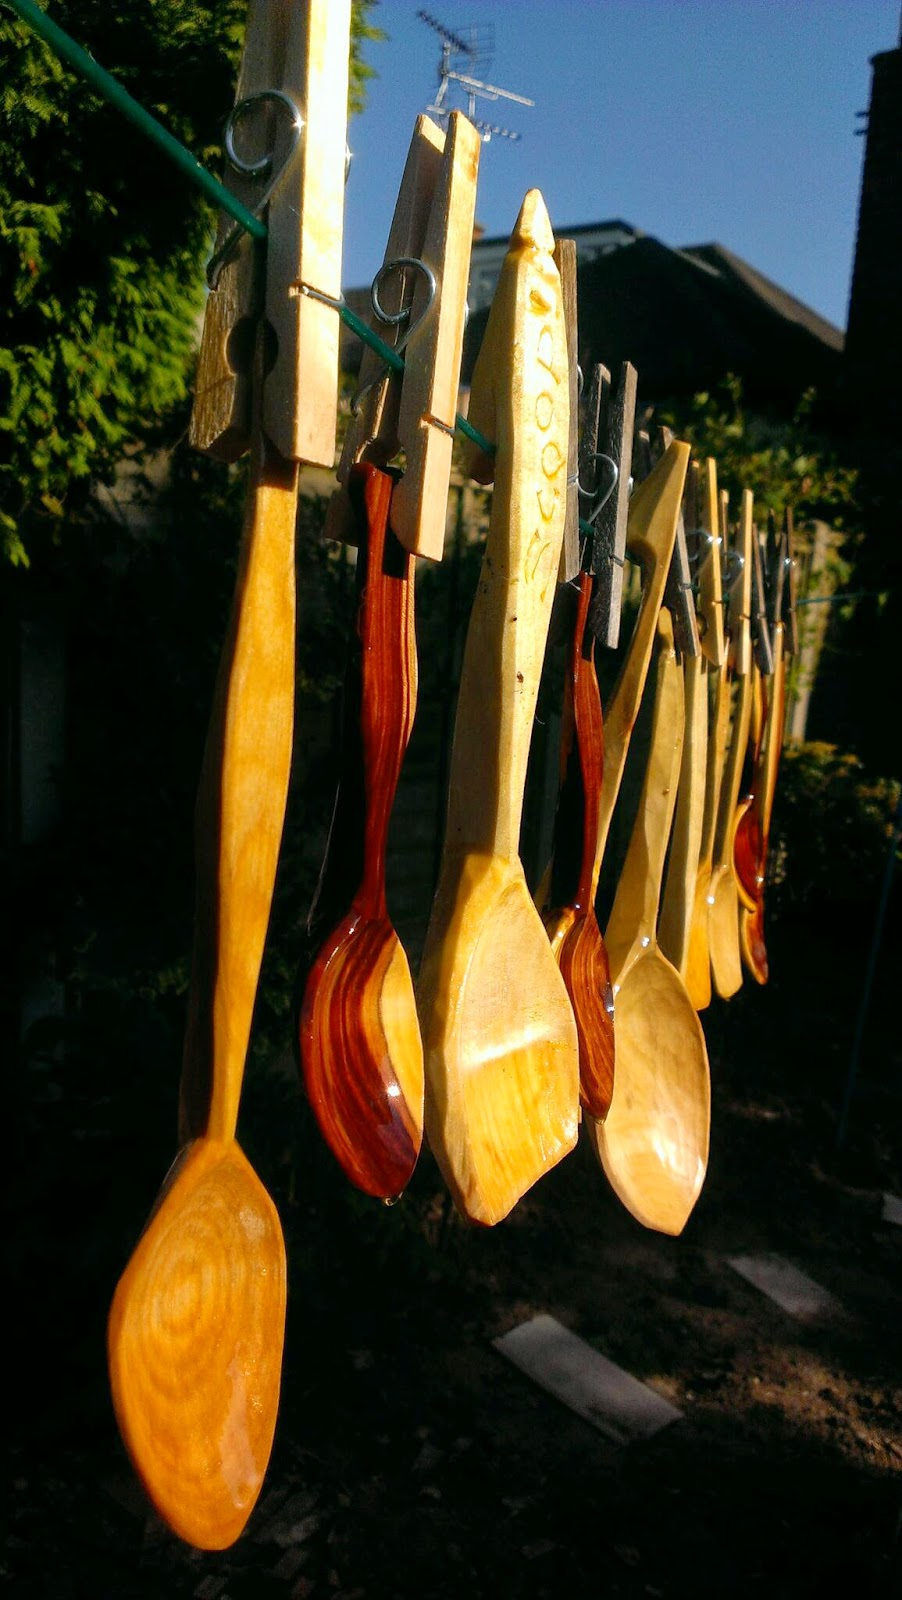 Tom bartlett hand carved spoons oiled and pegged out to